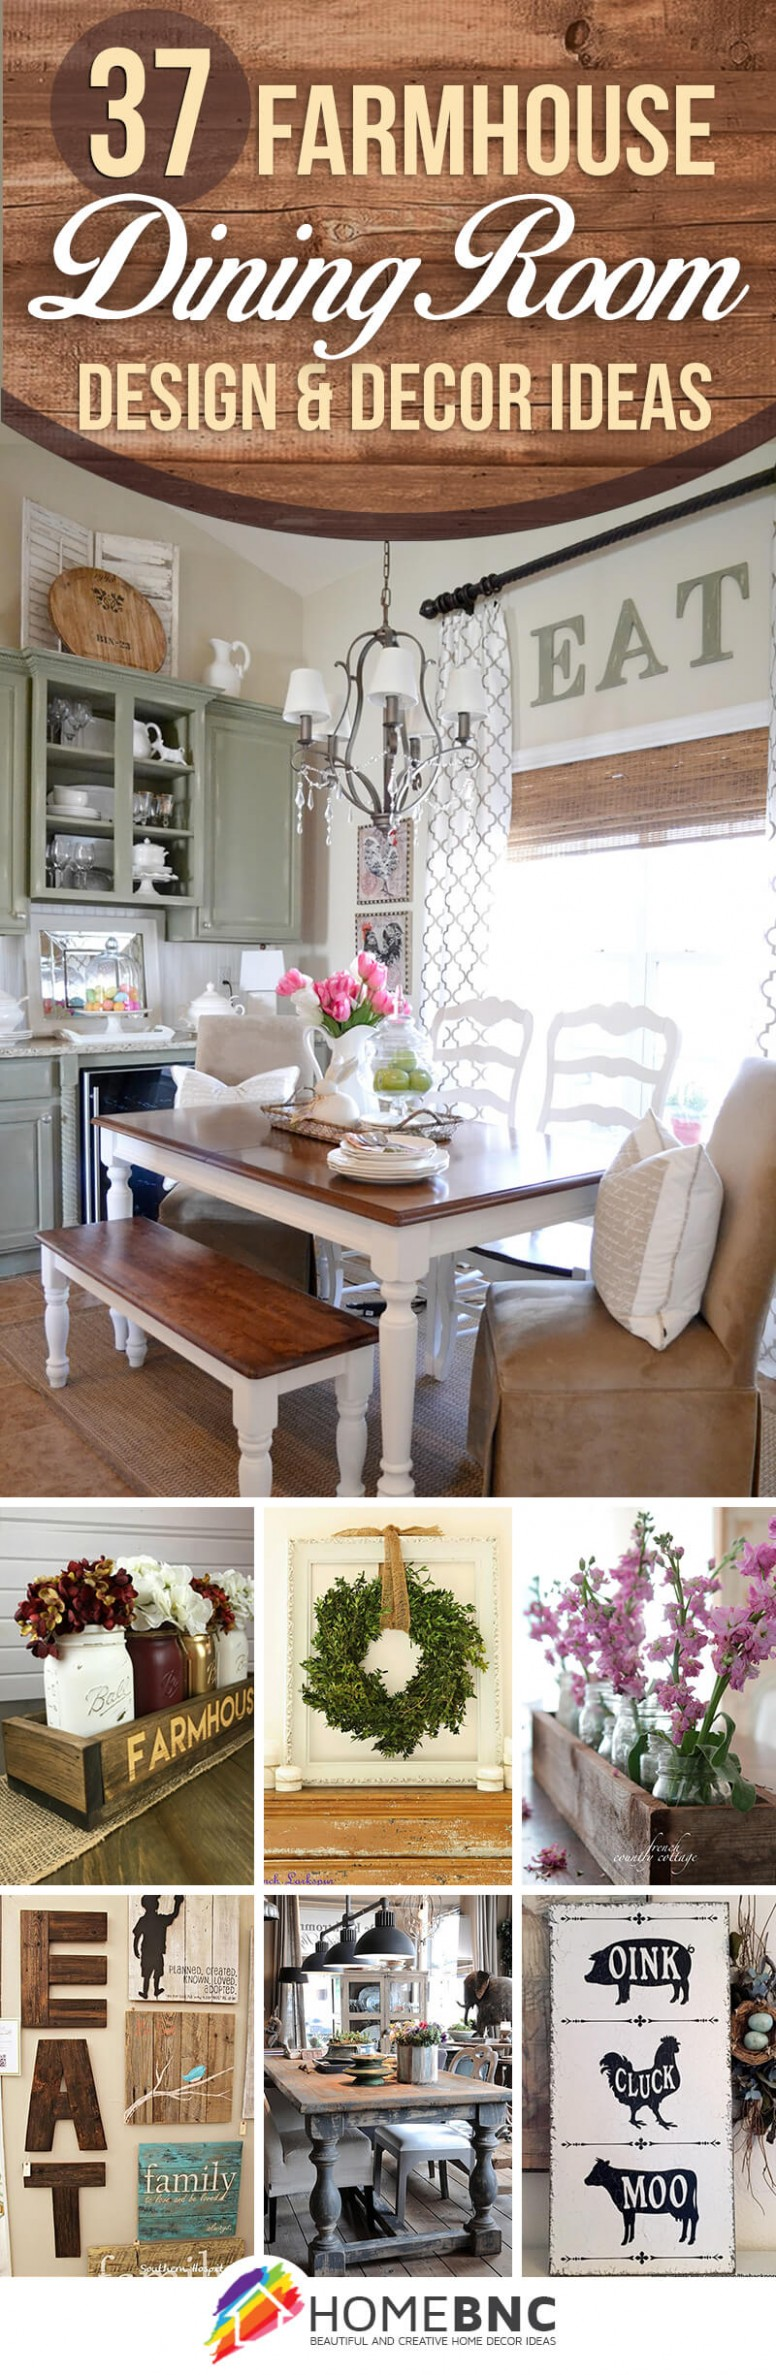 11 Best Farmhouse Dining Room Design and Decor Ideas for 11 - Dining Room Ideas Country